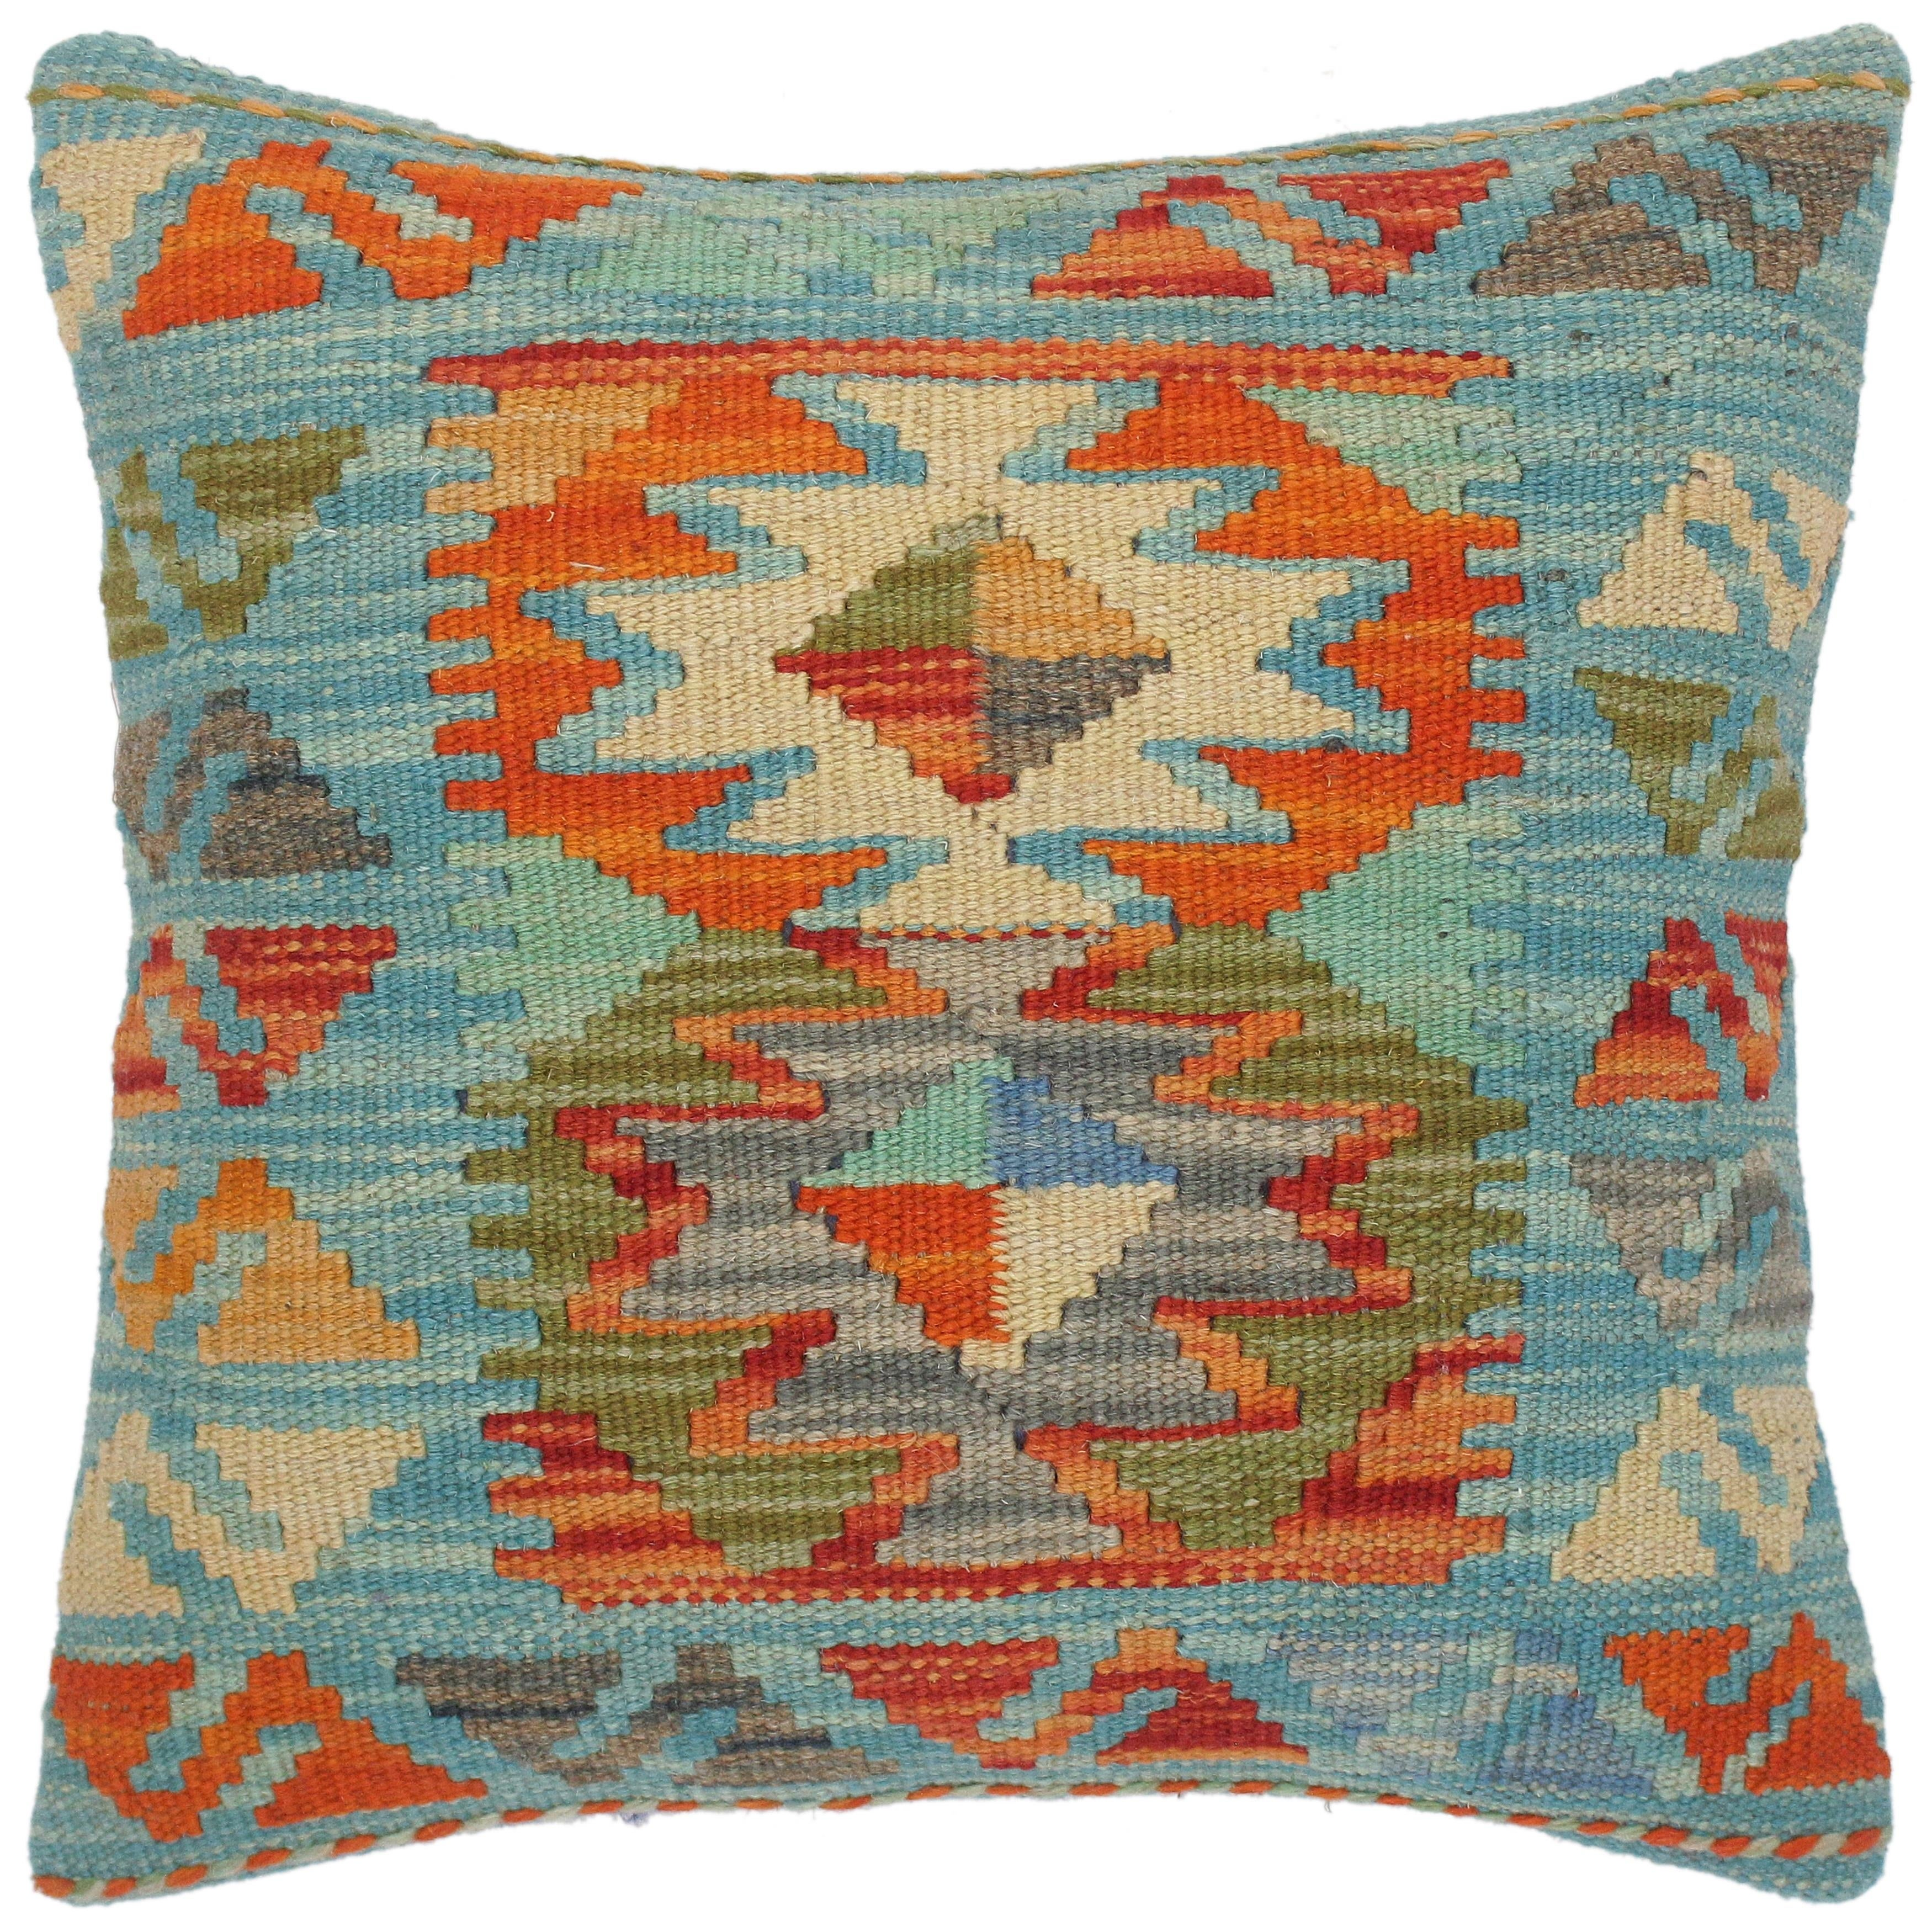 Shop For Bohemian Isaiah Hand Woven Turkish Kilim Pillow 16 In X 16 In Get Free Shipping On Everything At Overstock Your Online Home Decor Outlet Store Get 5 In Rewards With Club O 32525686